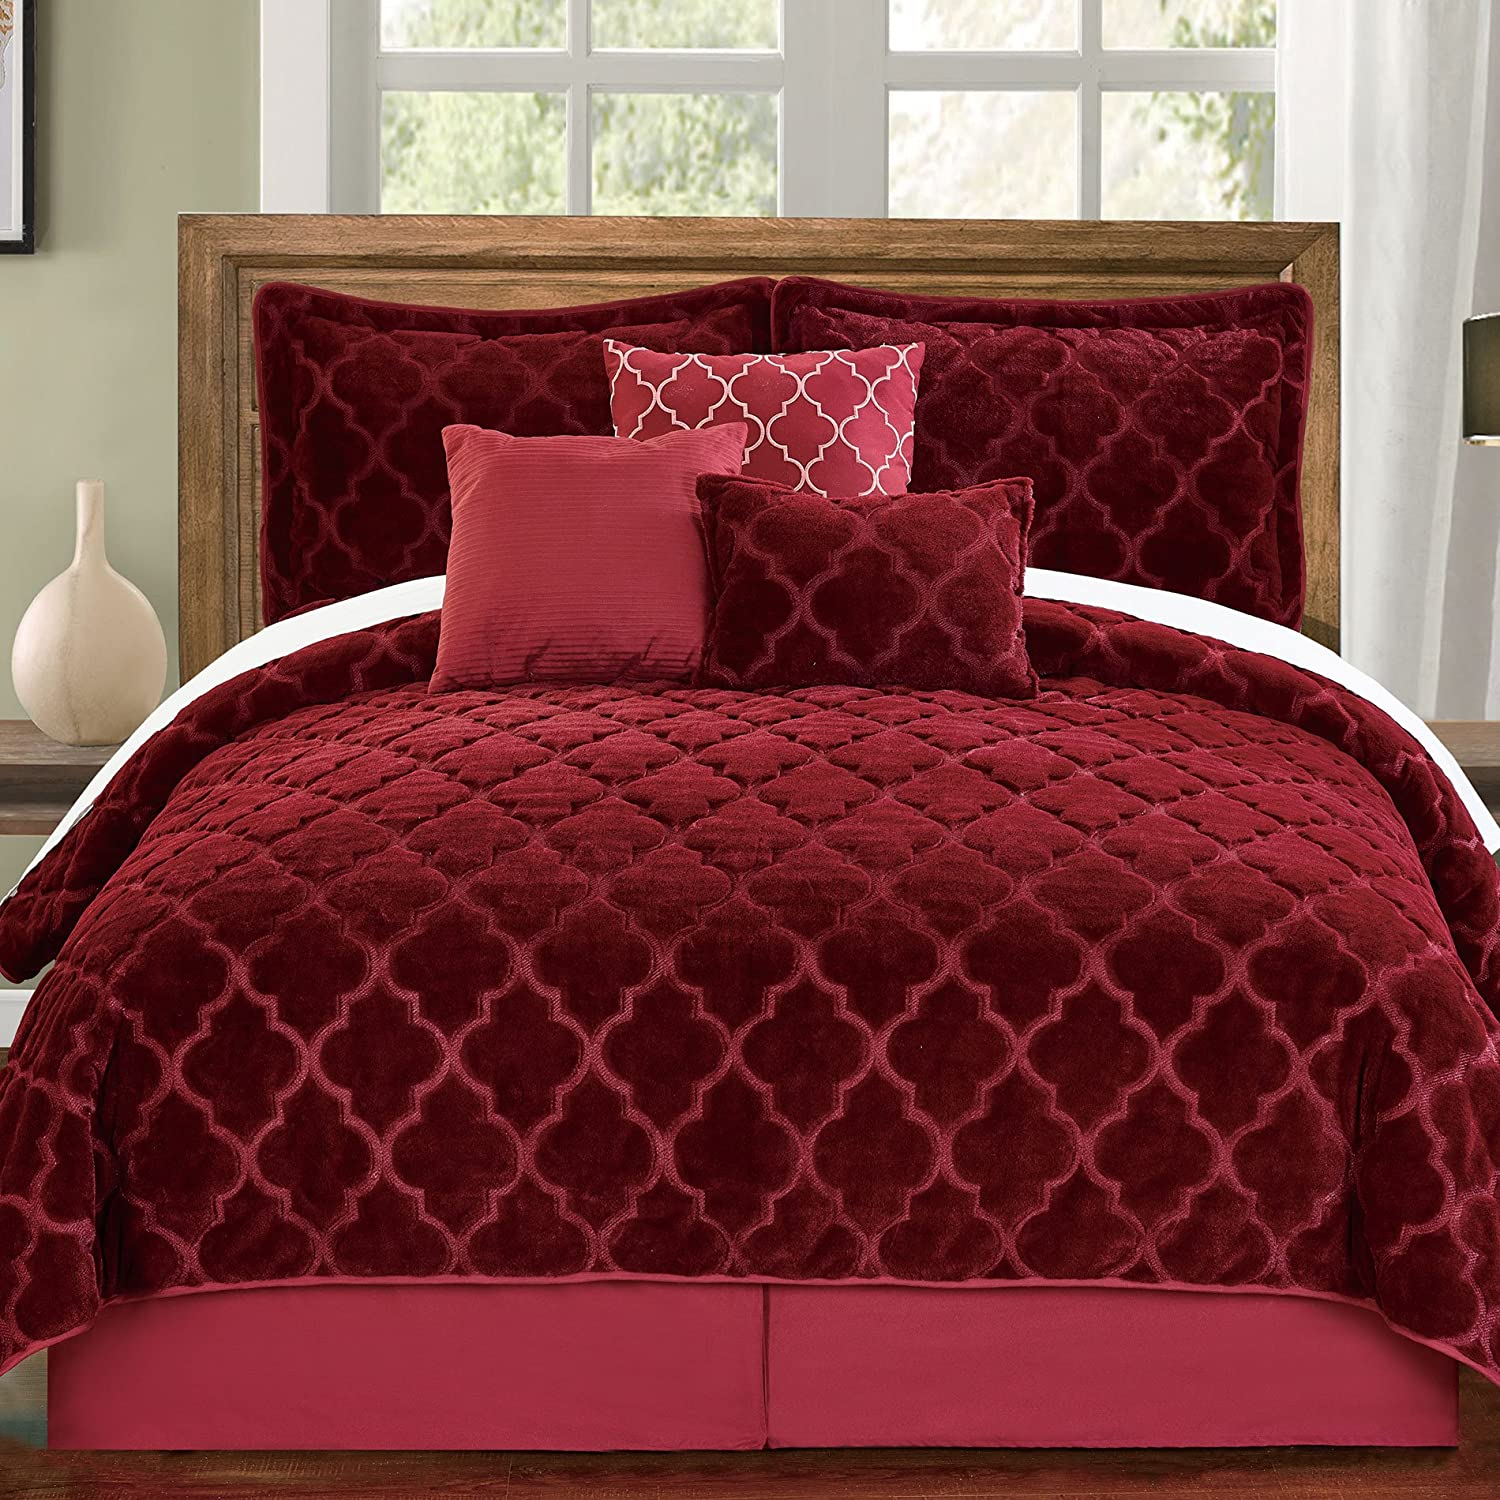 Animer and price revision Serenta Faux Fur Ogee Embroidery 7 Quilts Q Piece Bedspread Set Seattle Mall